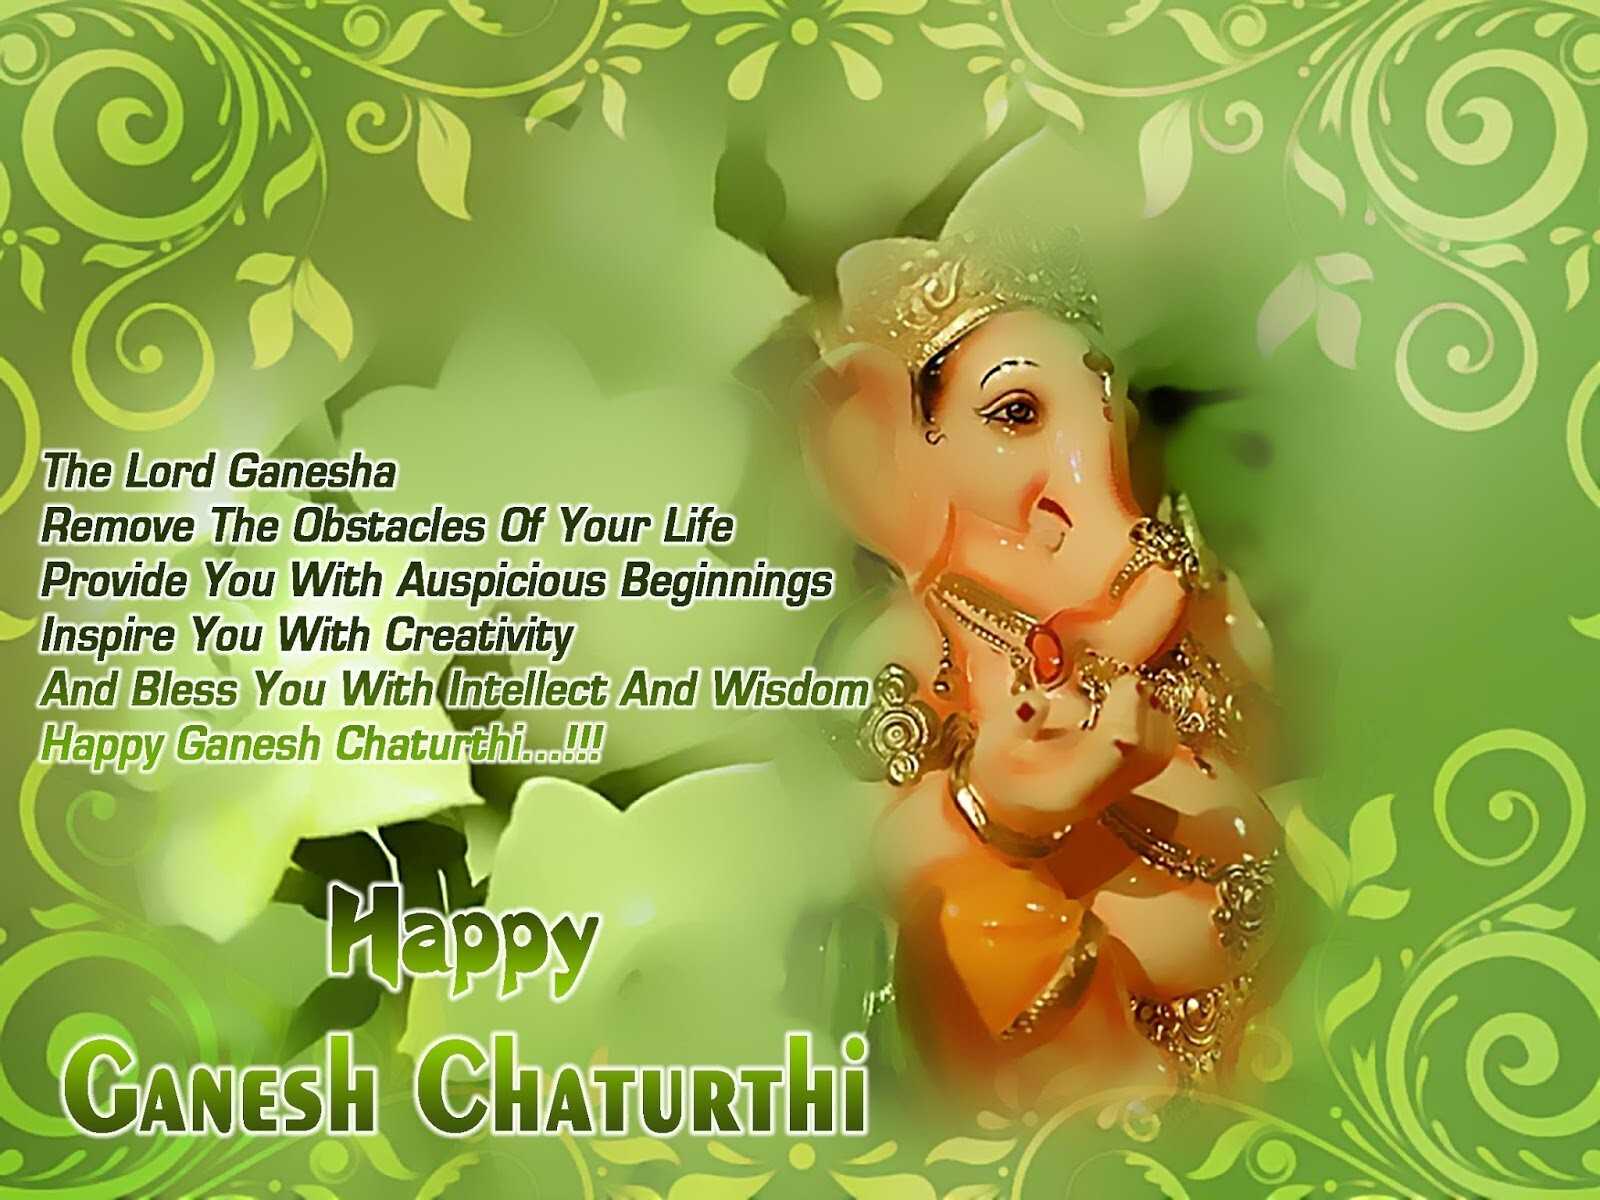 Ganesh chaturthi greetings cards hd wallpapers ganesh chaturthi greetings cards m4hsunfo